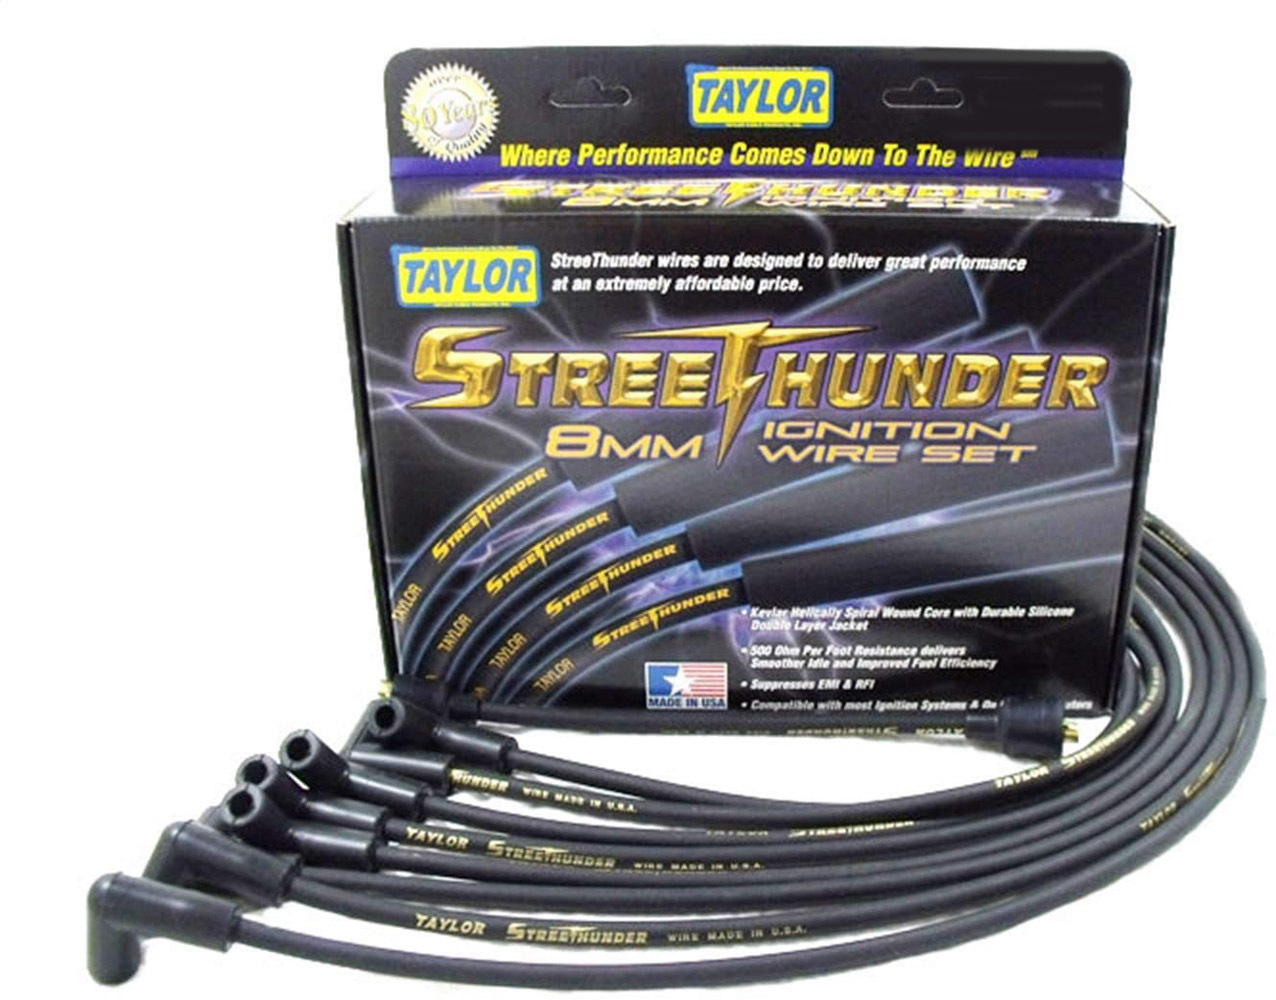 Taylor 53010 Spark Plug Wire Set, Street Thunder, Spiral Core, 8.00 mm, Black, Factory Style Boots / Terminals, GM V6, GM W-Body 1998-2006, Kit